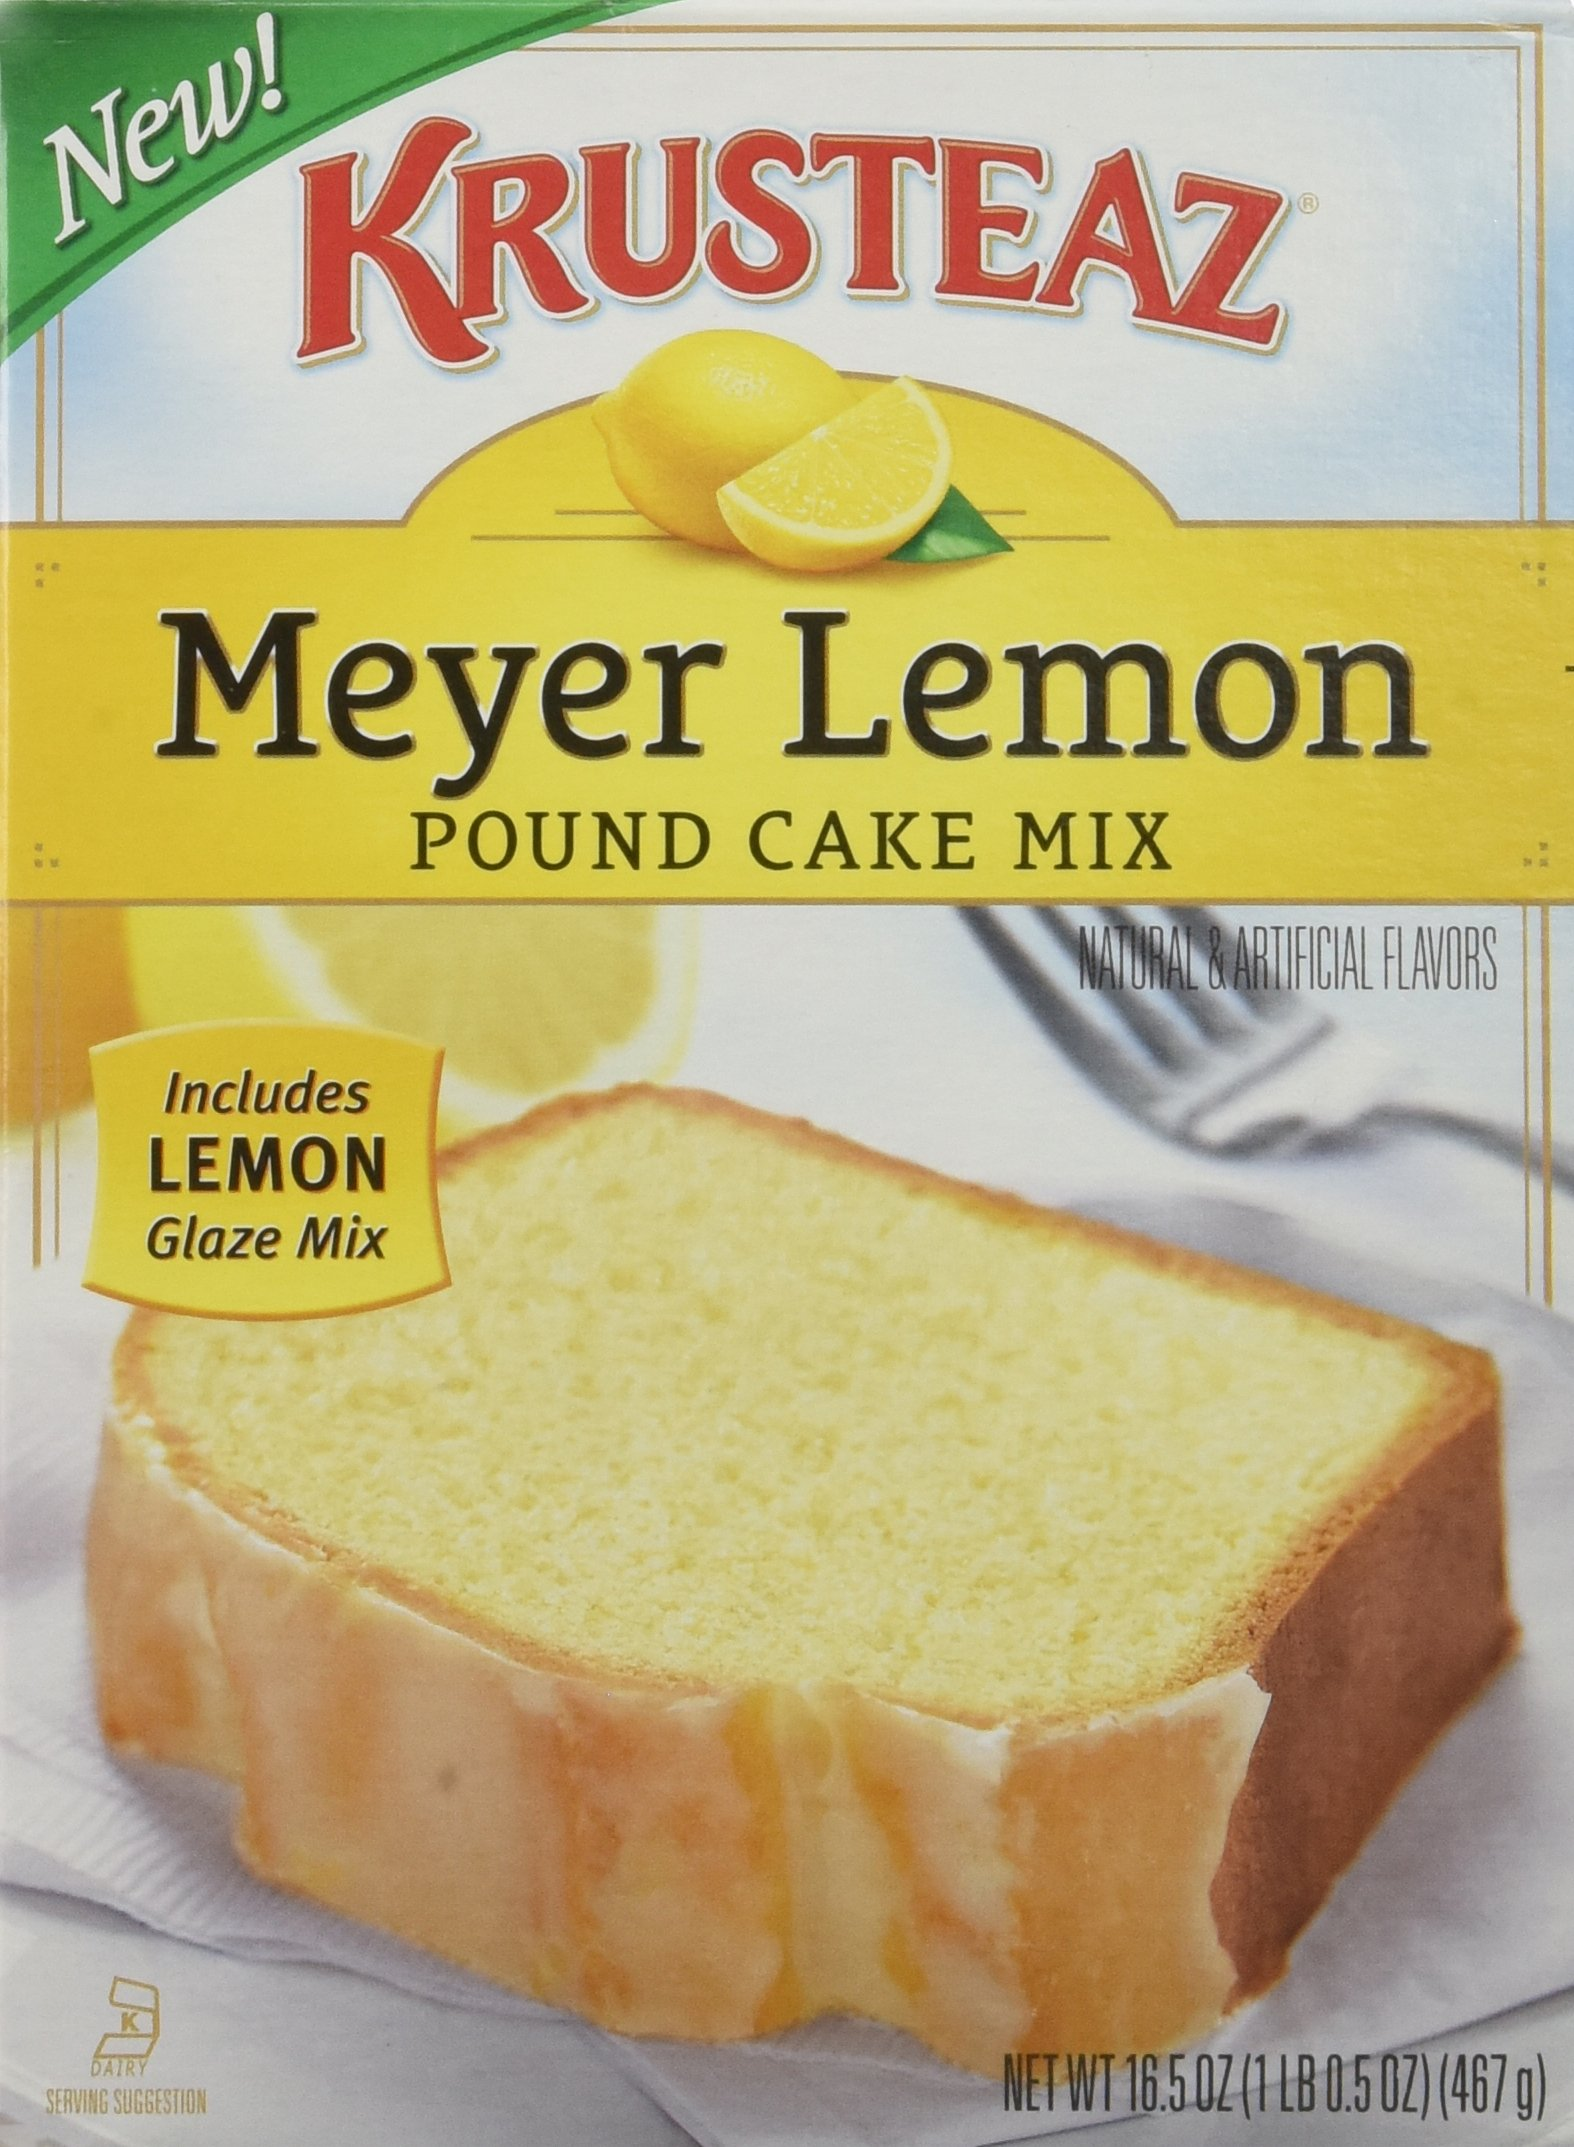 Krusteaz Lemon Pound Cake Mix